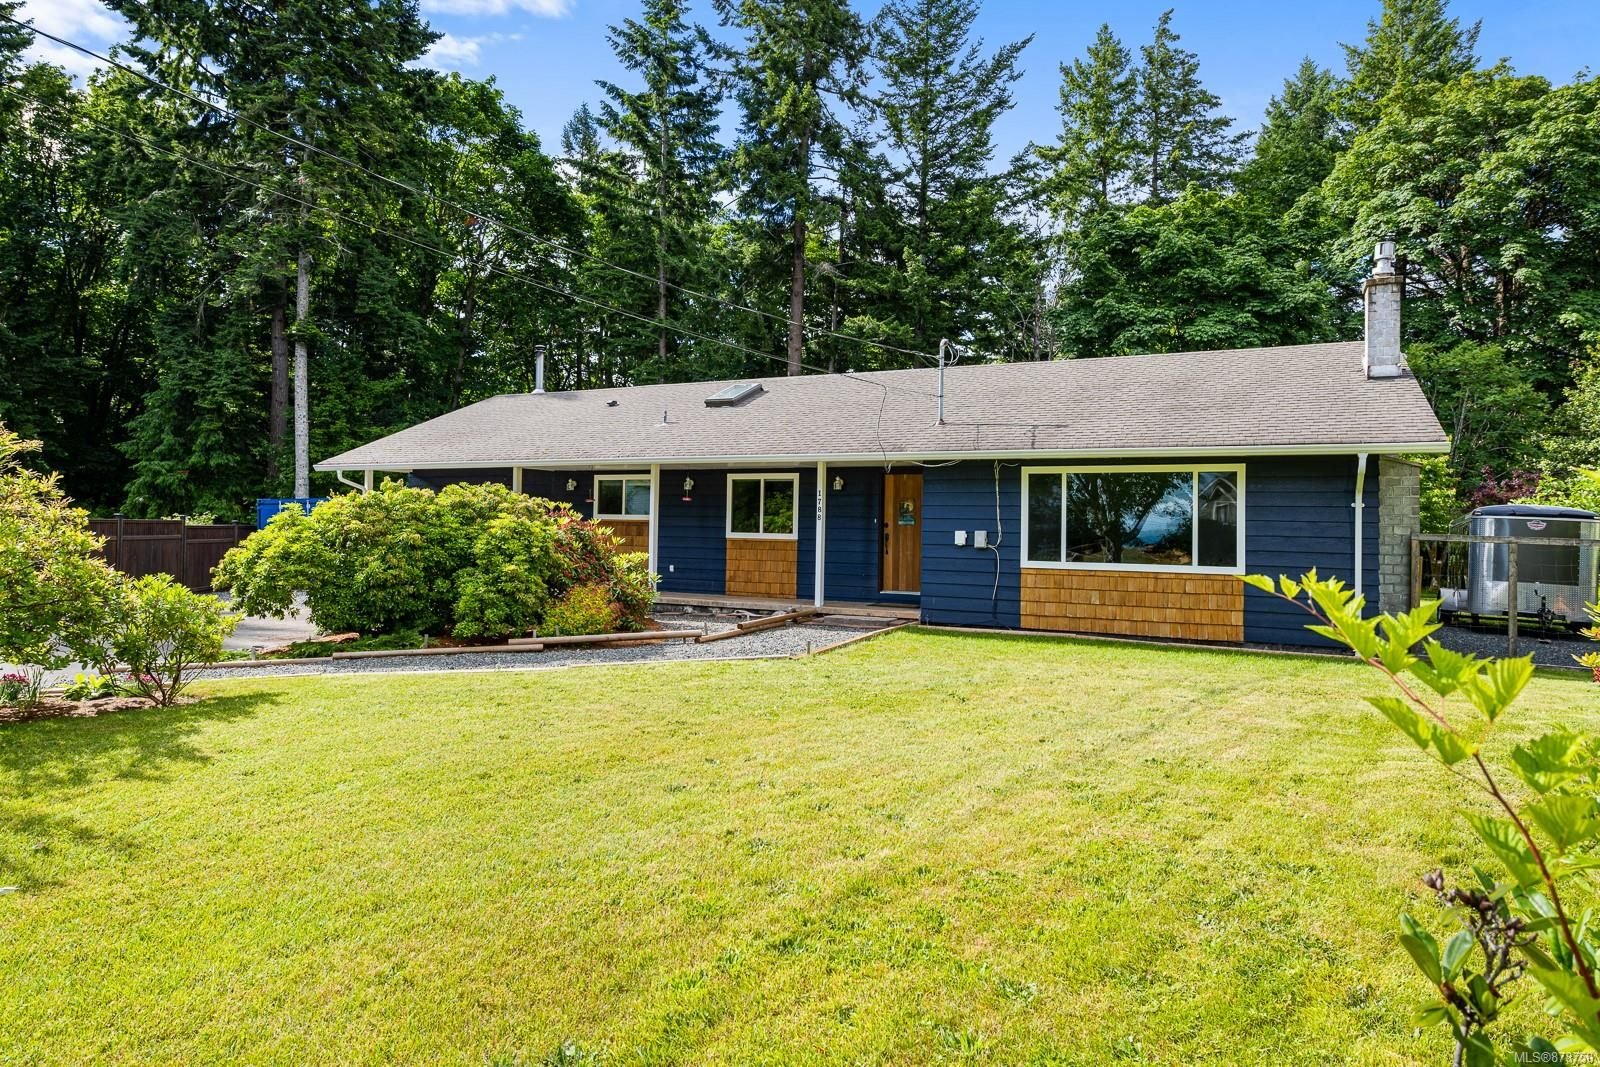 Main Photo: 1788 Fern Rd in : CV Courtenay North House for sale (Comox Valley)  : MLS®# 878750